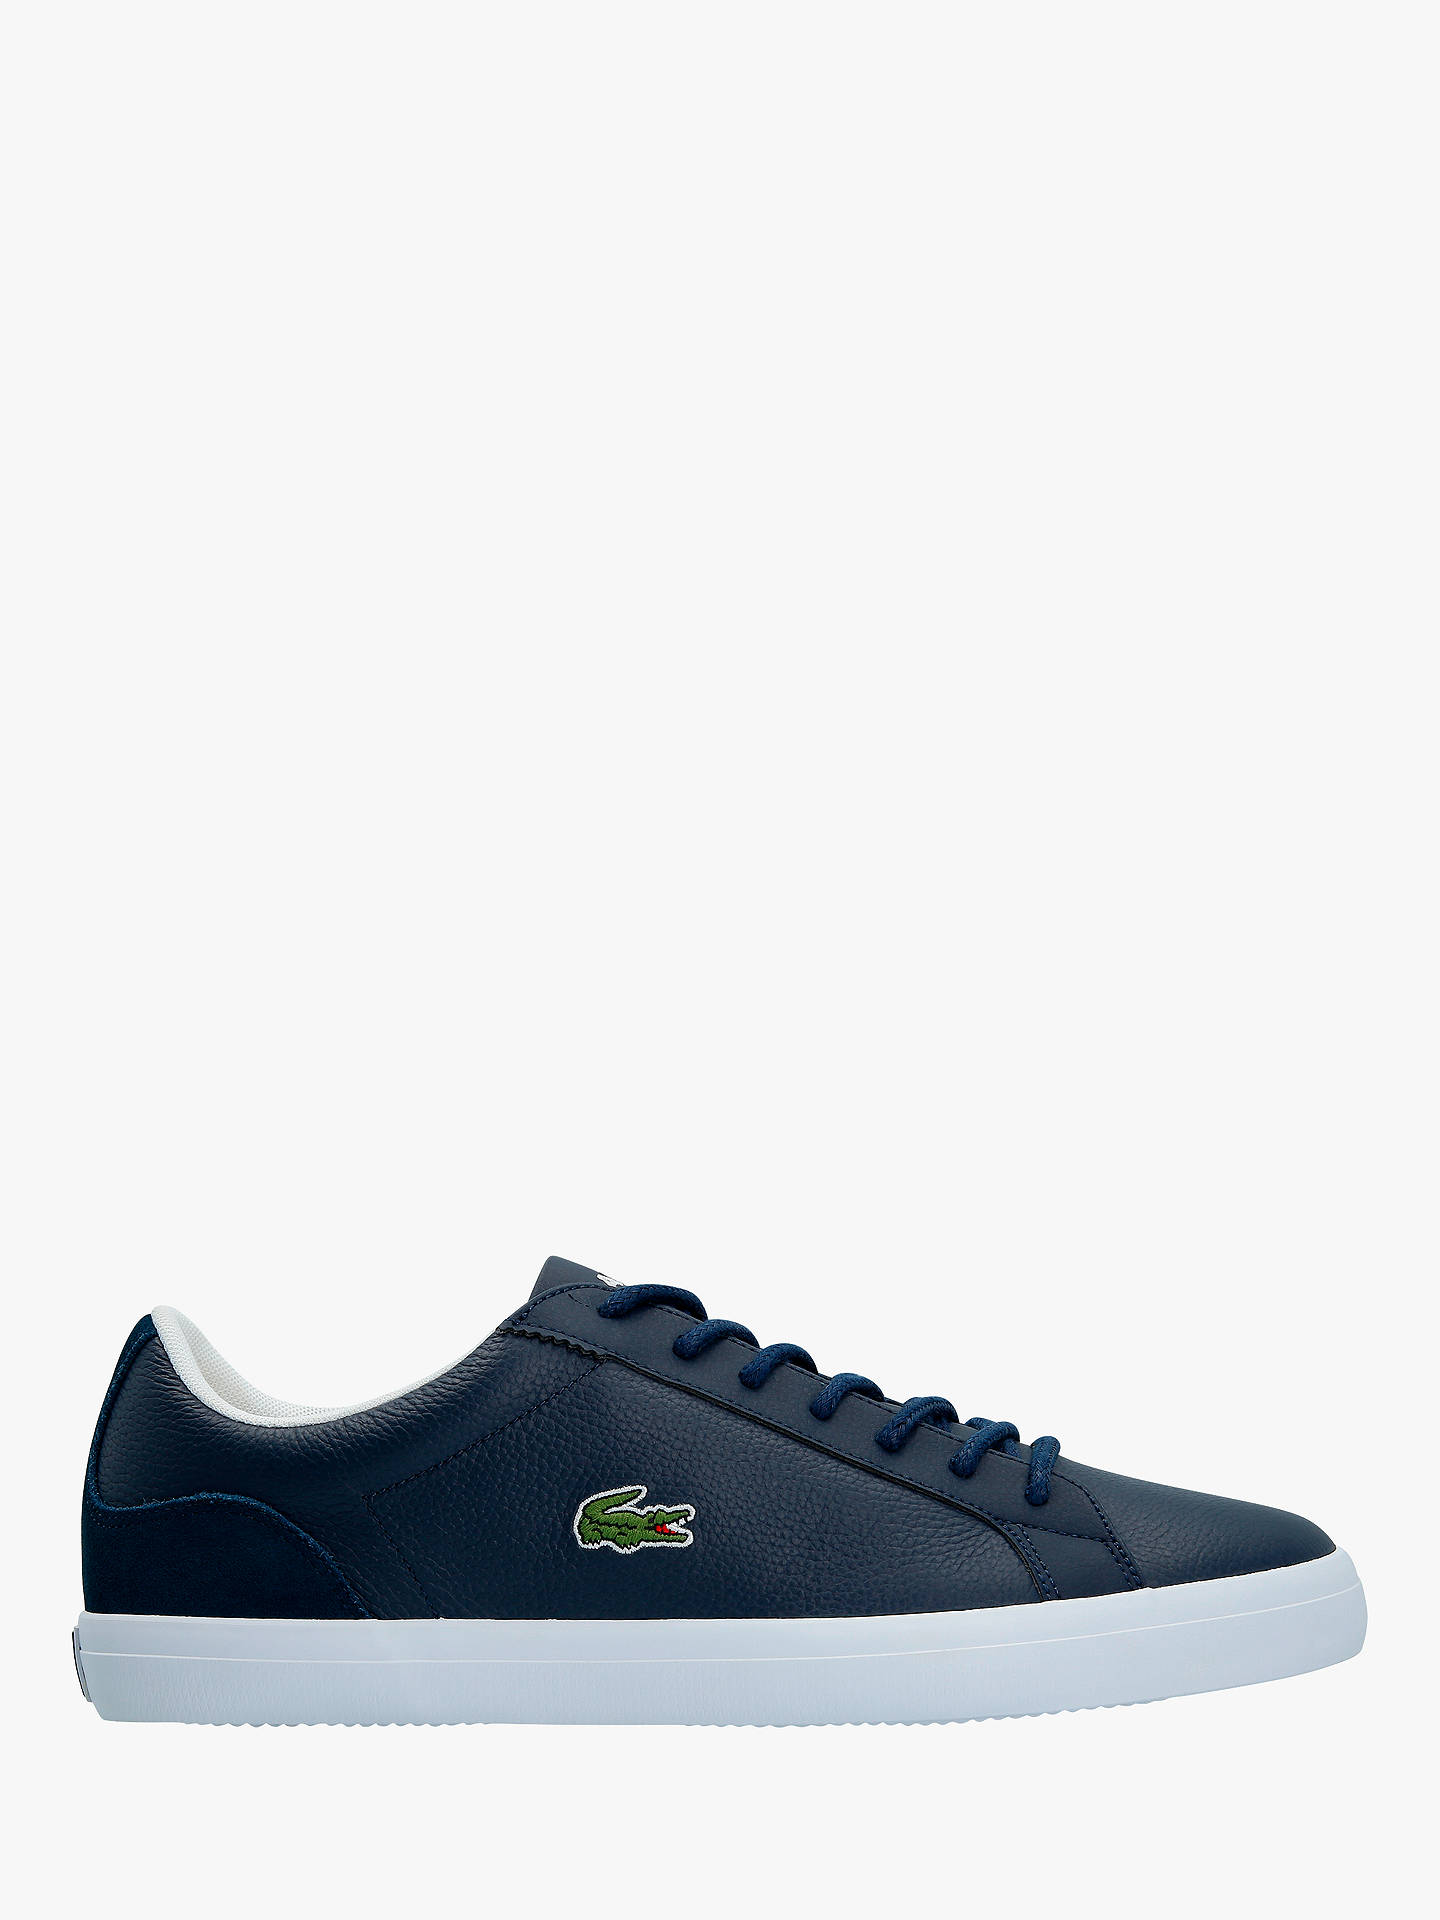 966146f8d854c2 Lacoste Lerond Trainers at John Lewis   Partners